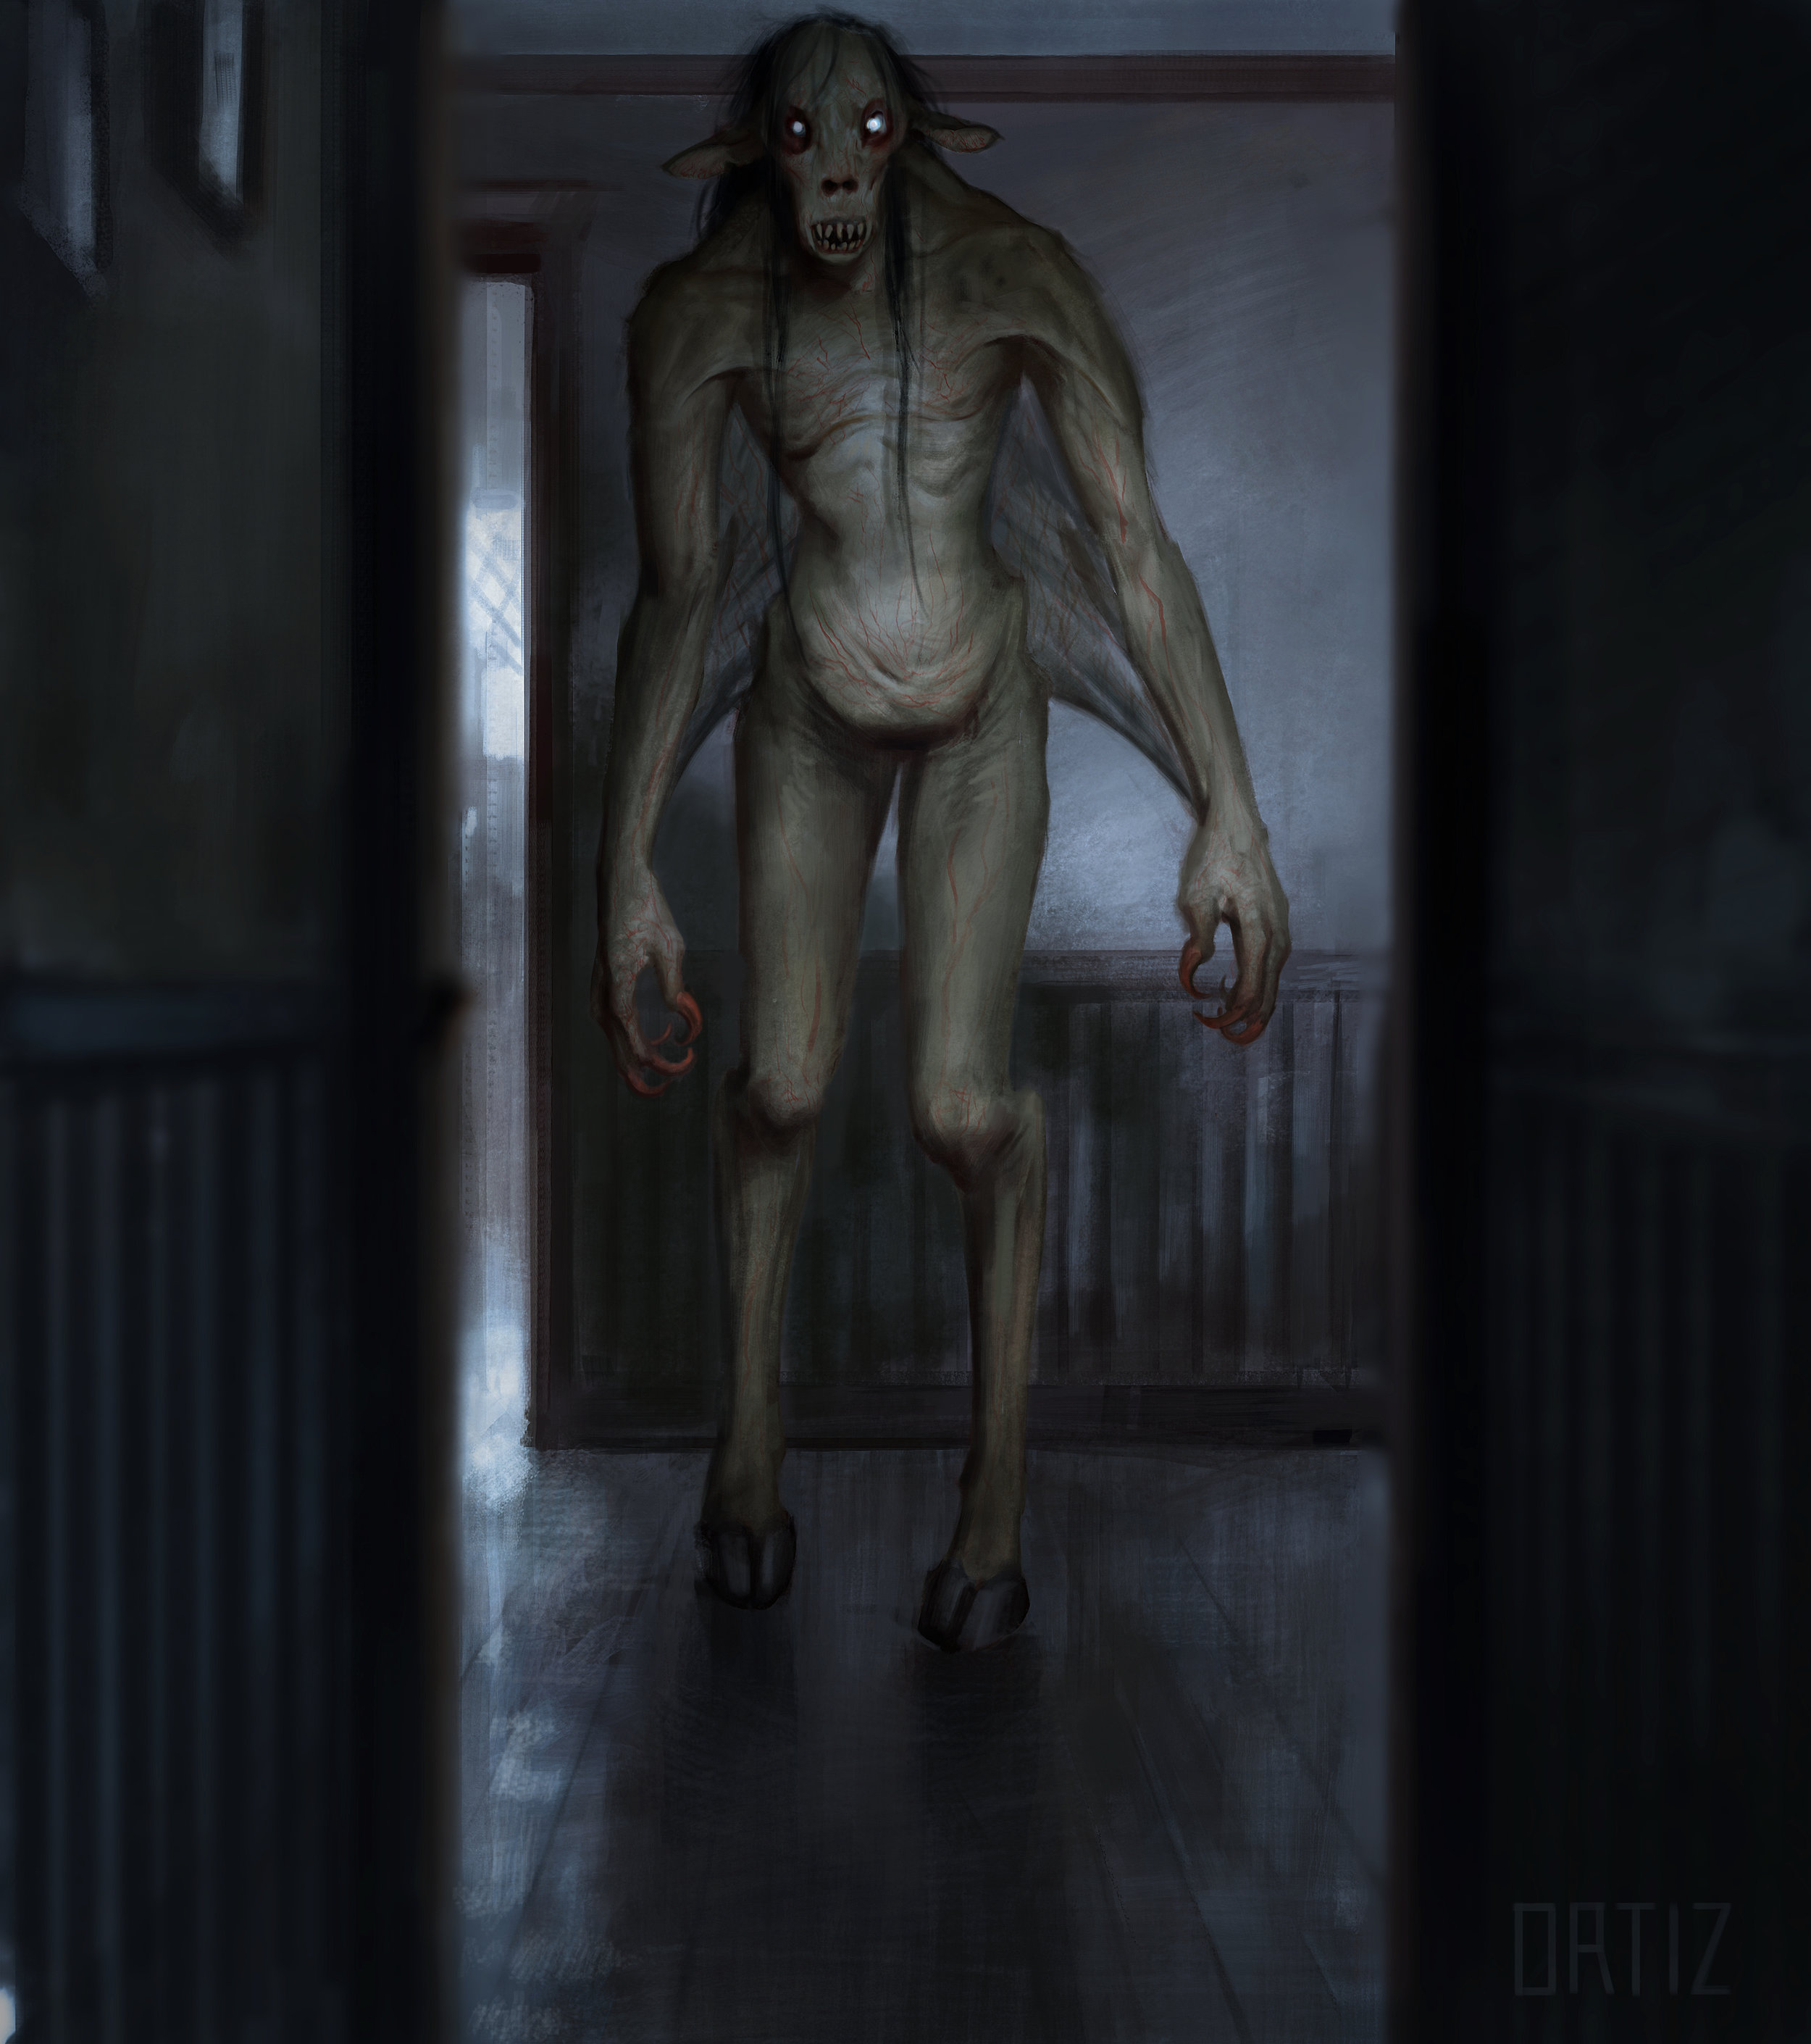 CONCEPT ART - for The Monster by Karla Ortiz